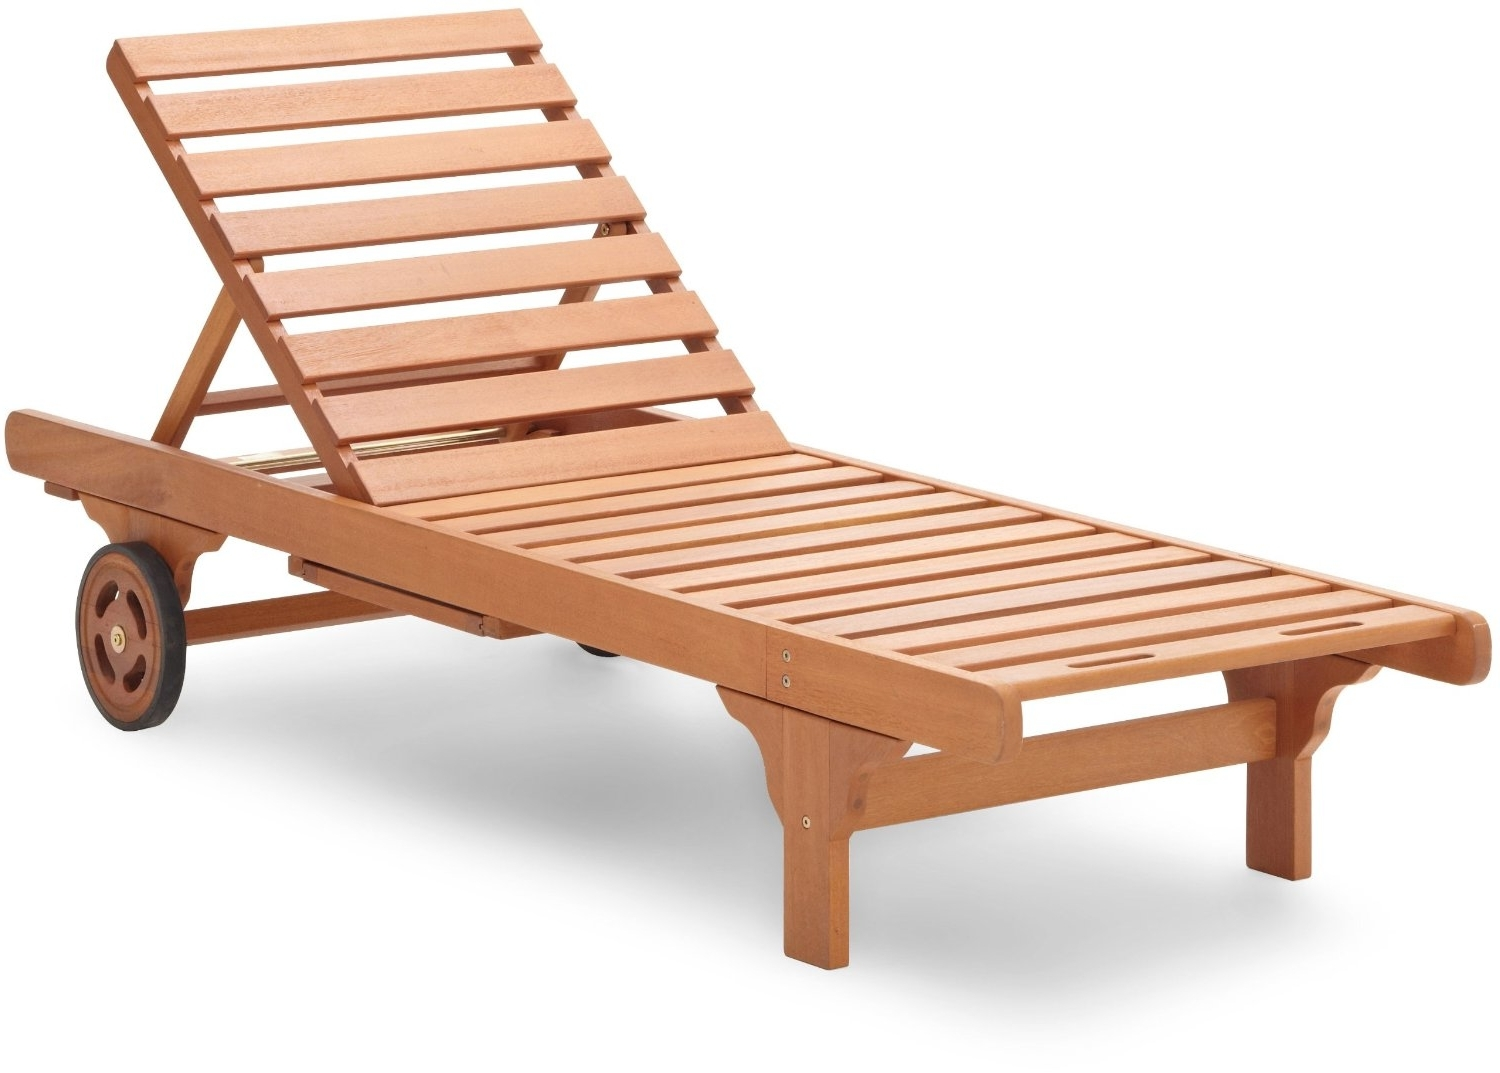 wooden lounge chair plans velvet office uk 15 inspirations of outdoor chaise chairs